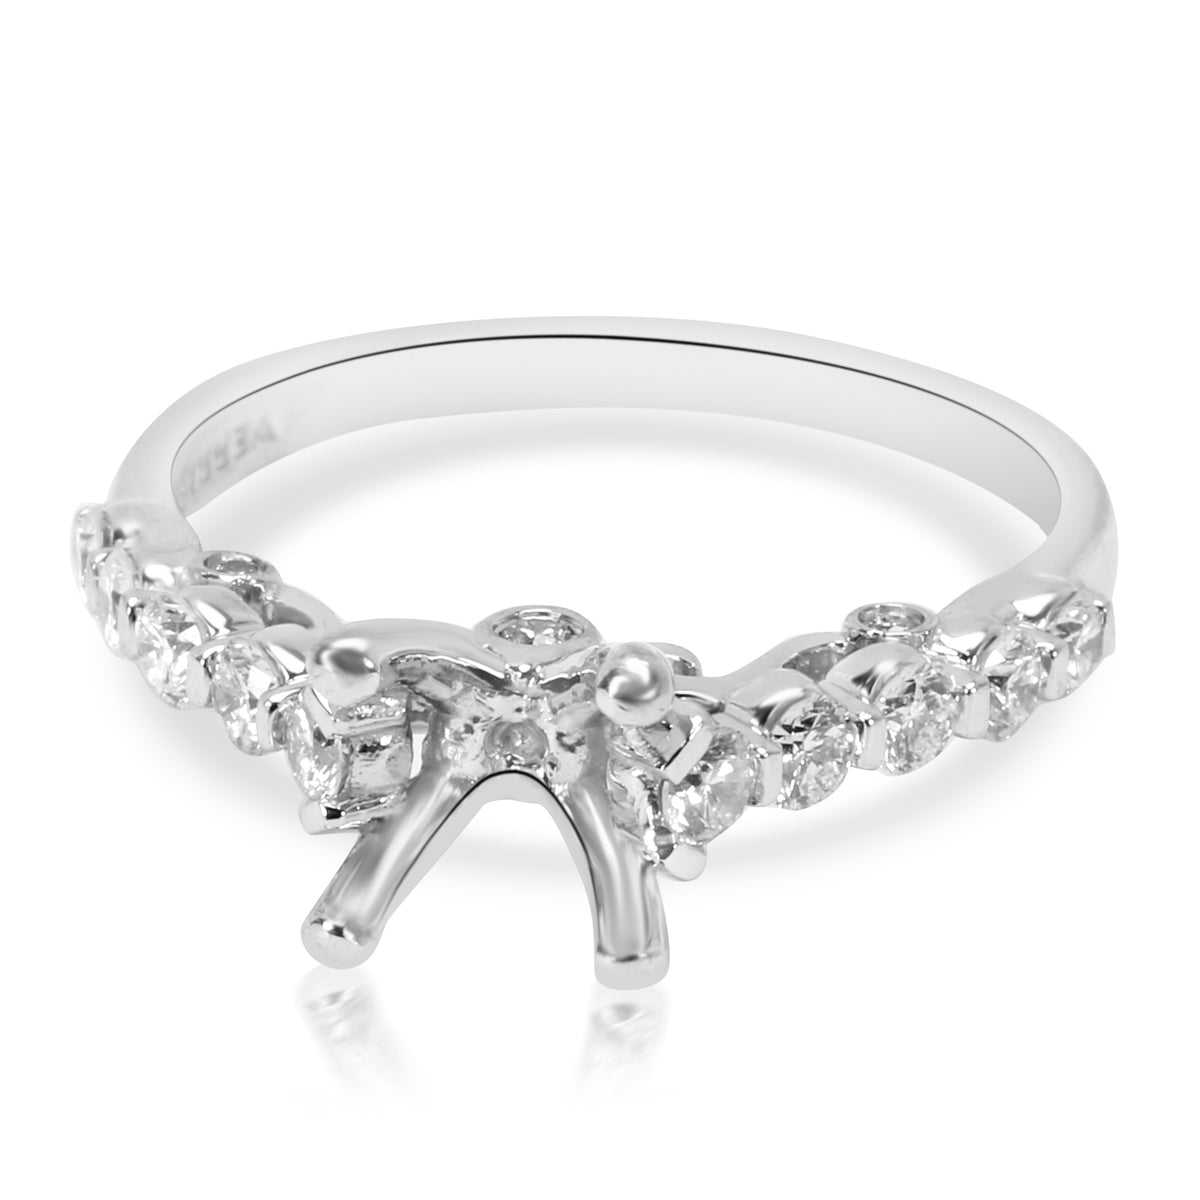 Verragio Cathedral Diamond Engagement Ring Setting in 18K White Gold 0.37CTW